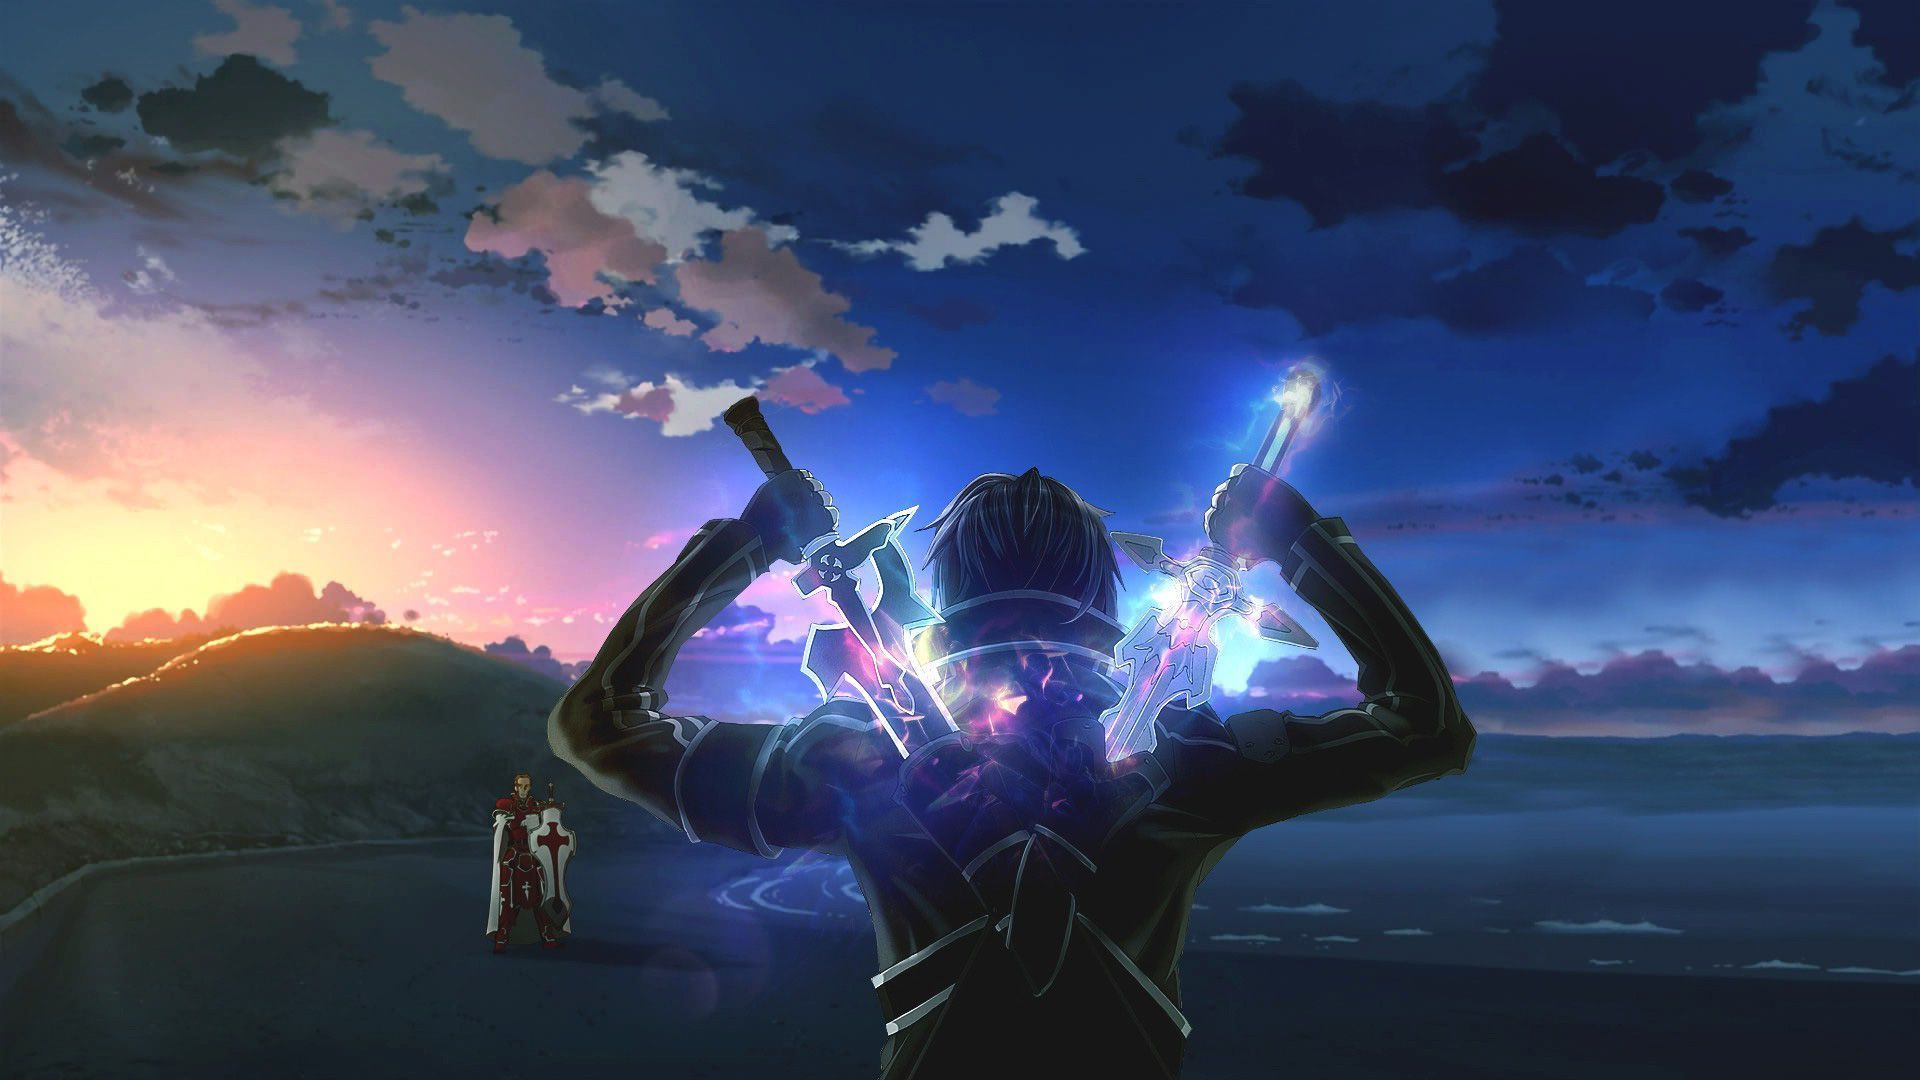 Fight Sword Art Online Anime Wallpaper